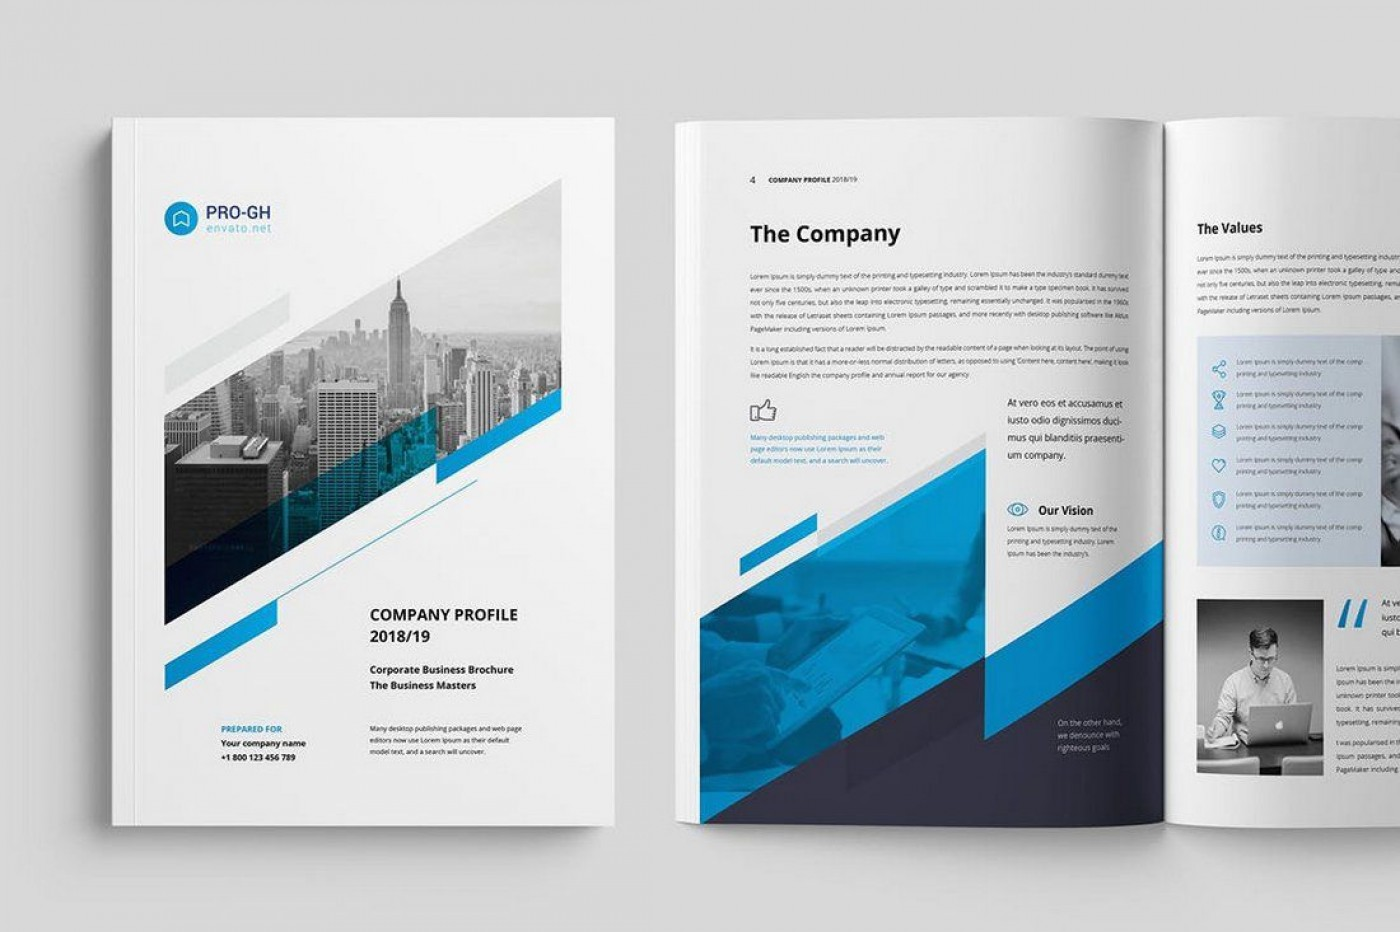 006 Fearsome Busines Brochure Design Template Free Download High Definition 1400